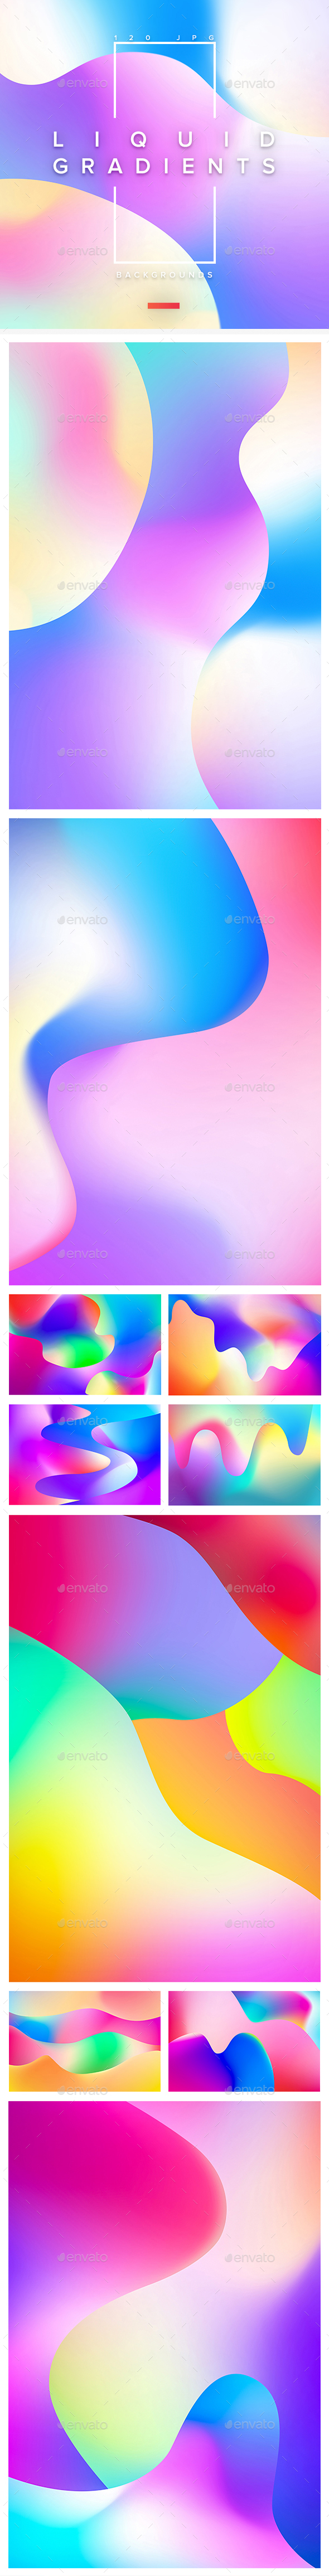 120 Liquid Gradients Backgrounds - Abstract Backgrounds